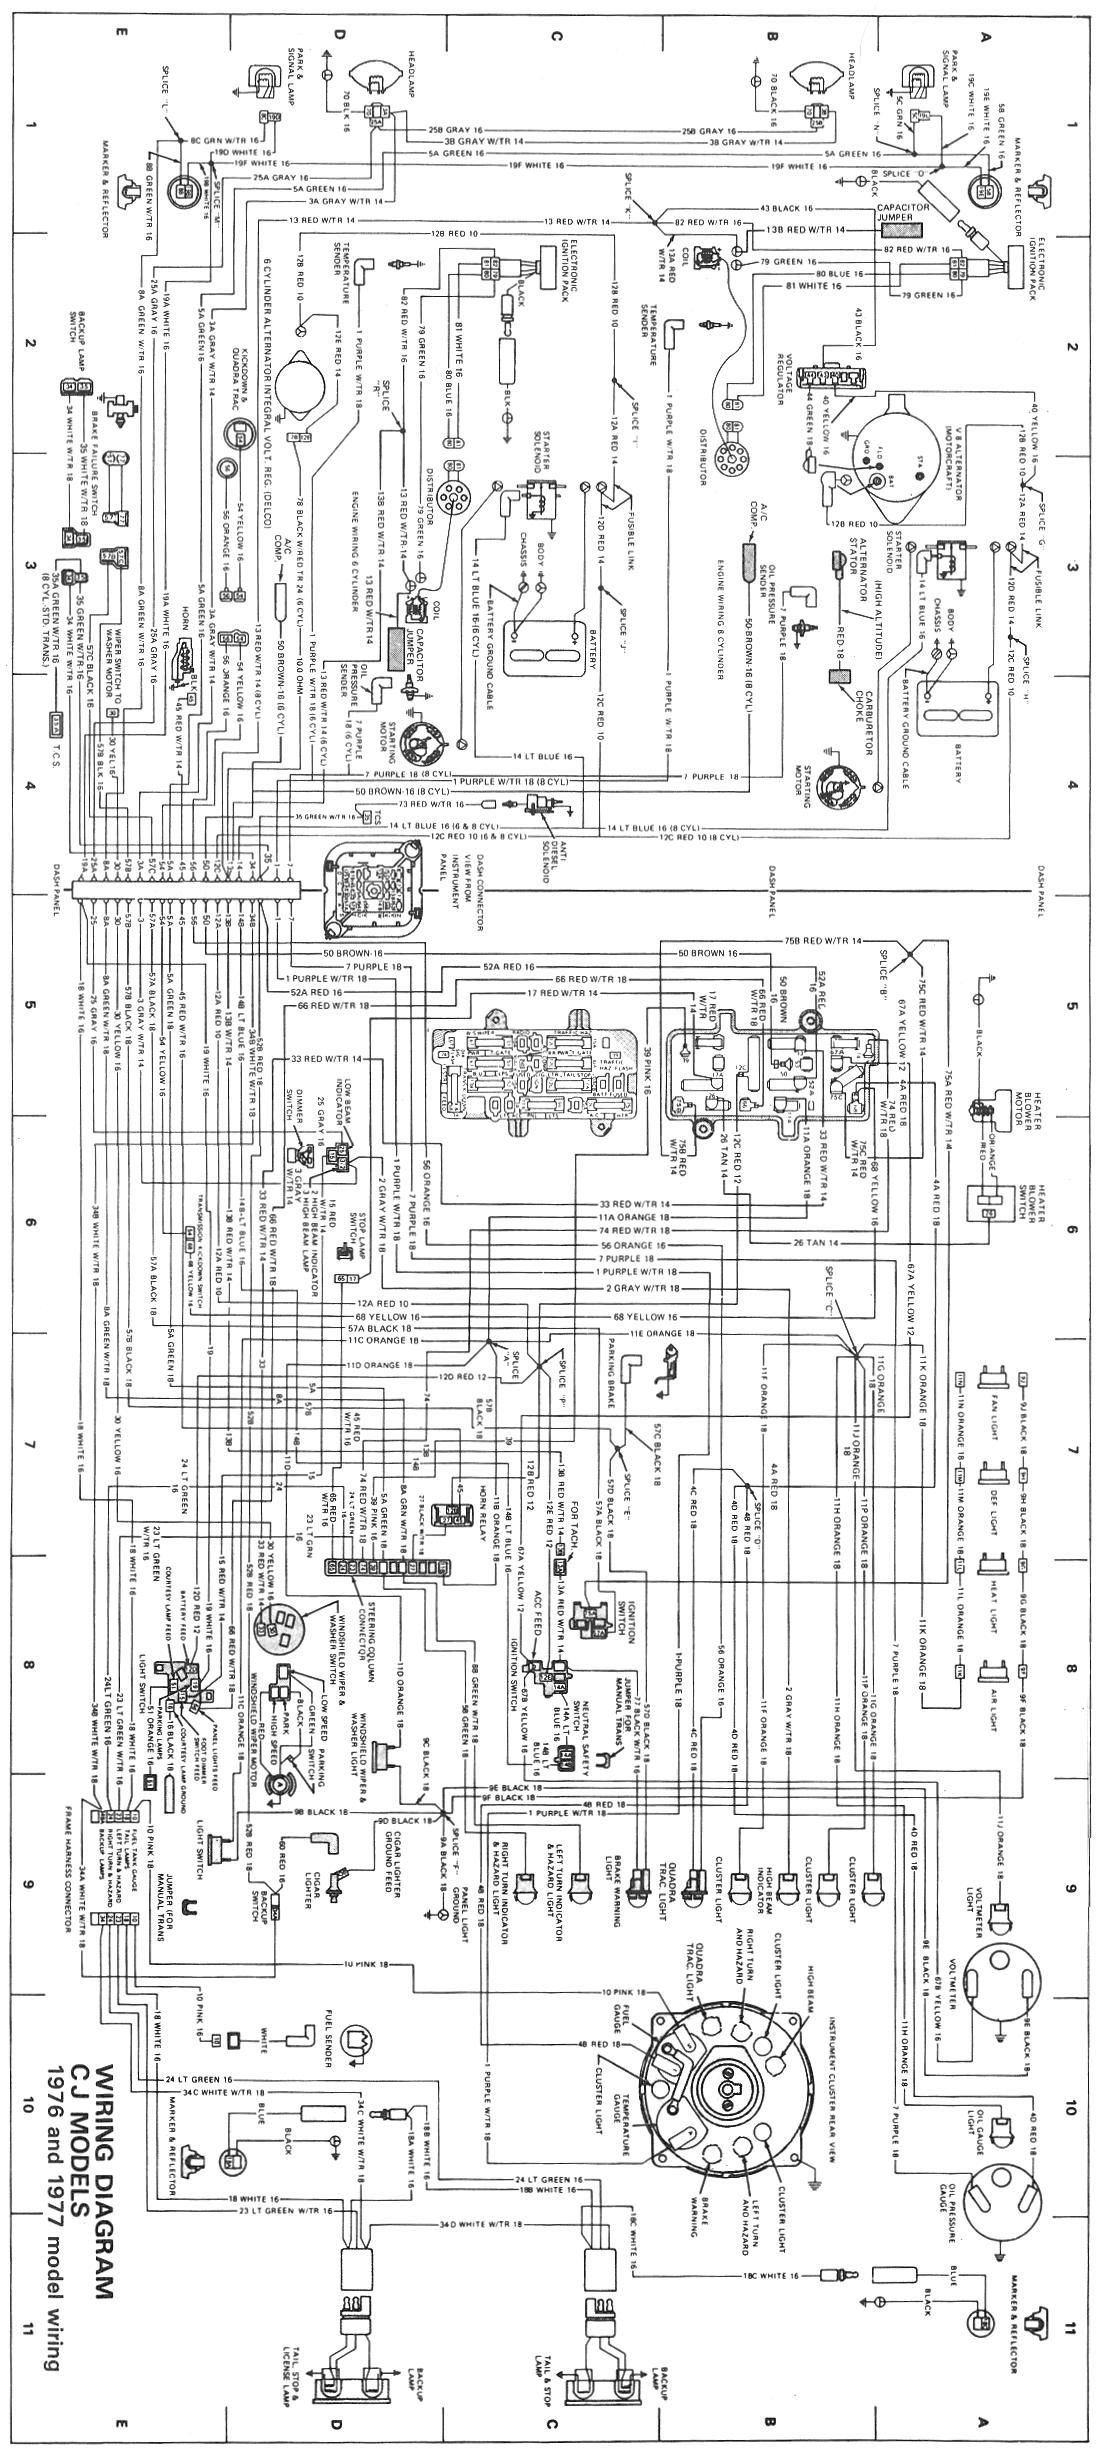 jeep wiring diagrams 1976 and 1977 cj jeep wiring pinterest rh pinterest com jeep liberty radio wire diagram jeep liberty radio wire diagram